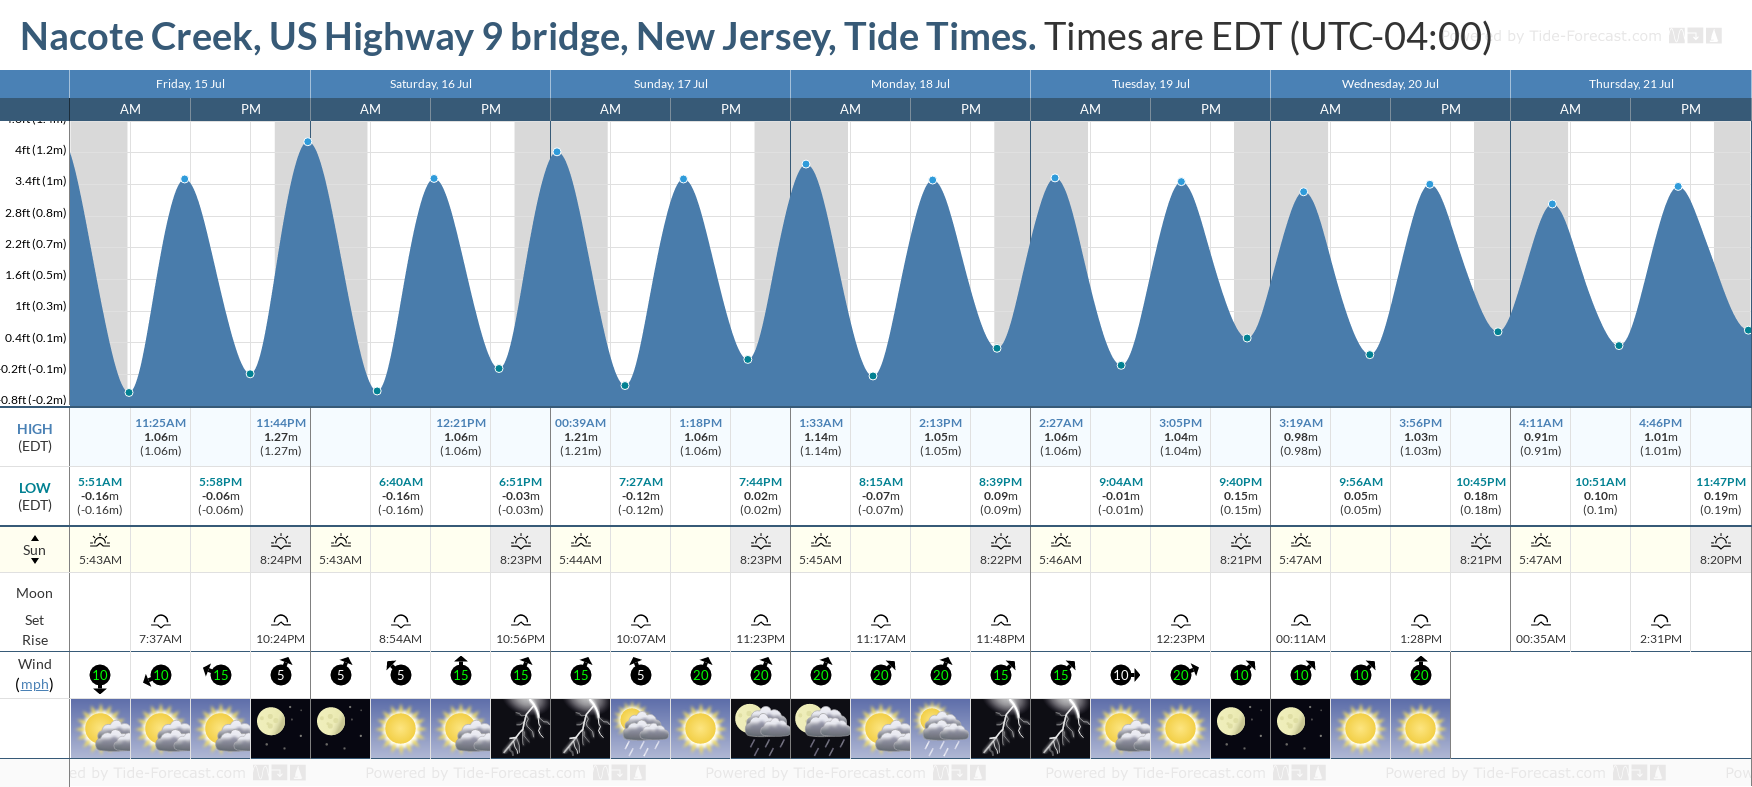 Nacote Creek, US Highway 9 bridge, New Jersey Tide Chart including high and low tide tide times for the next 7 days